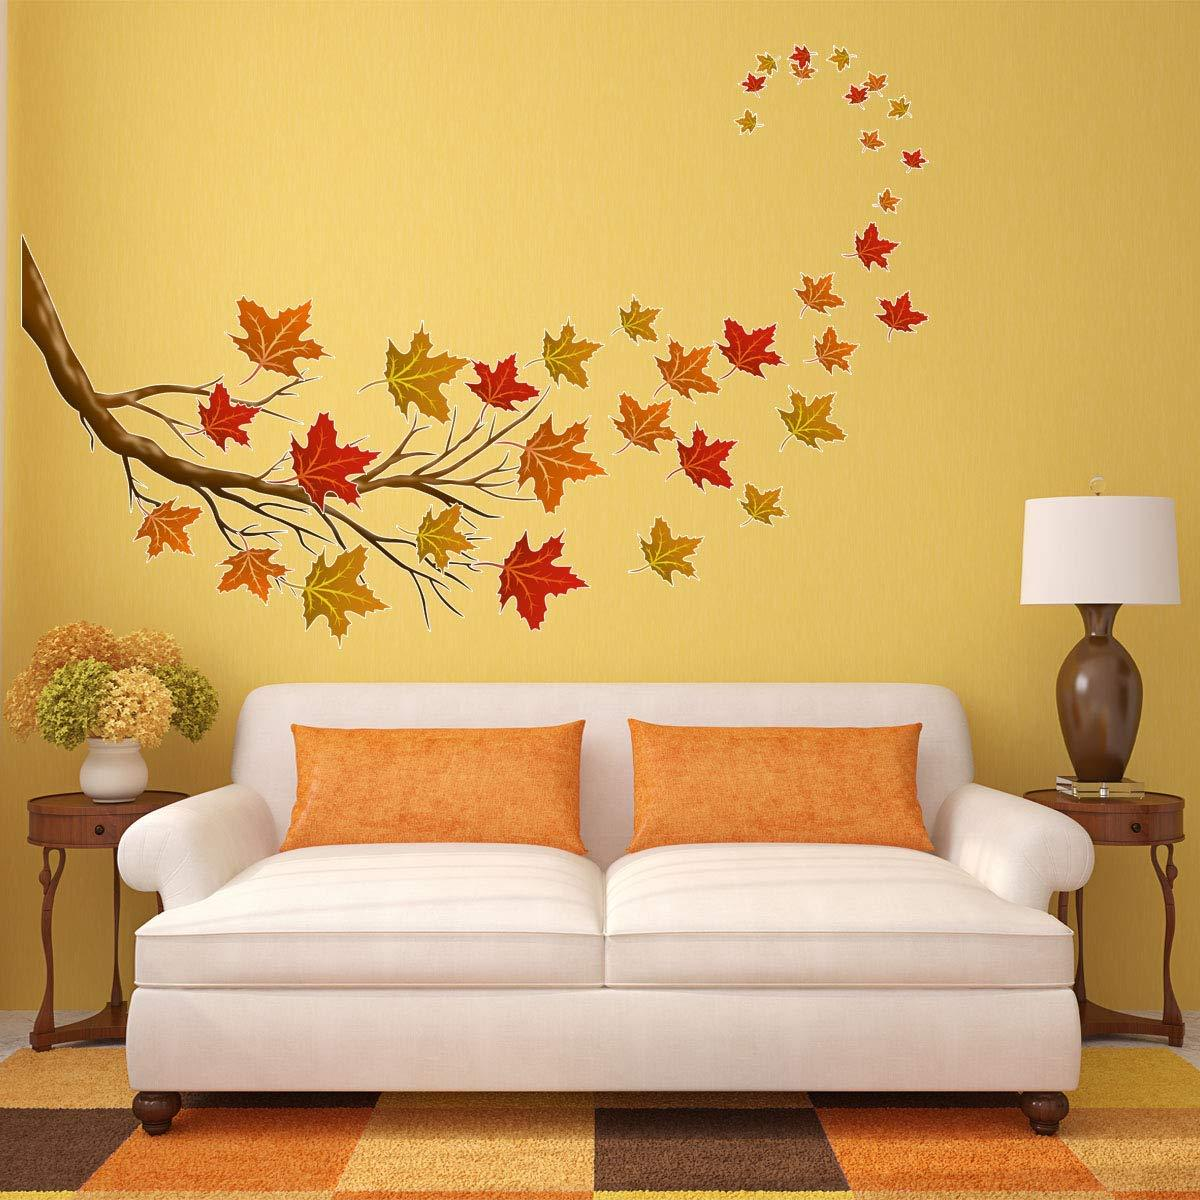 VWAQ Autumn Leaves Wall Decals - Tree Branch Stickers Fall Decorations 37 PCS - HOL23 - VWAQ Vinyl Wall Art Quotes and Prints